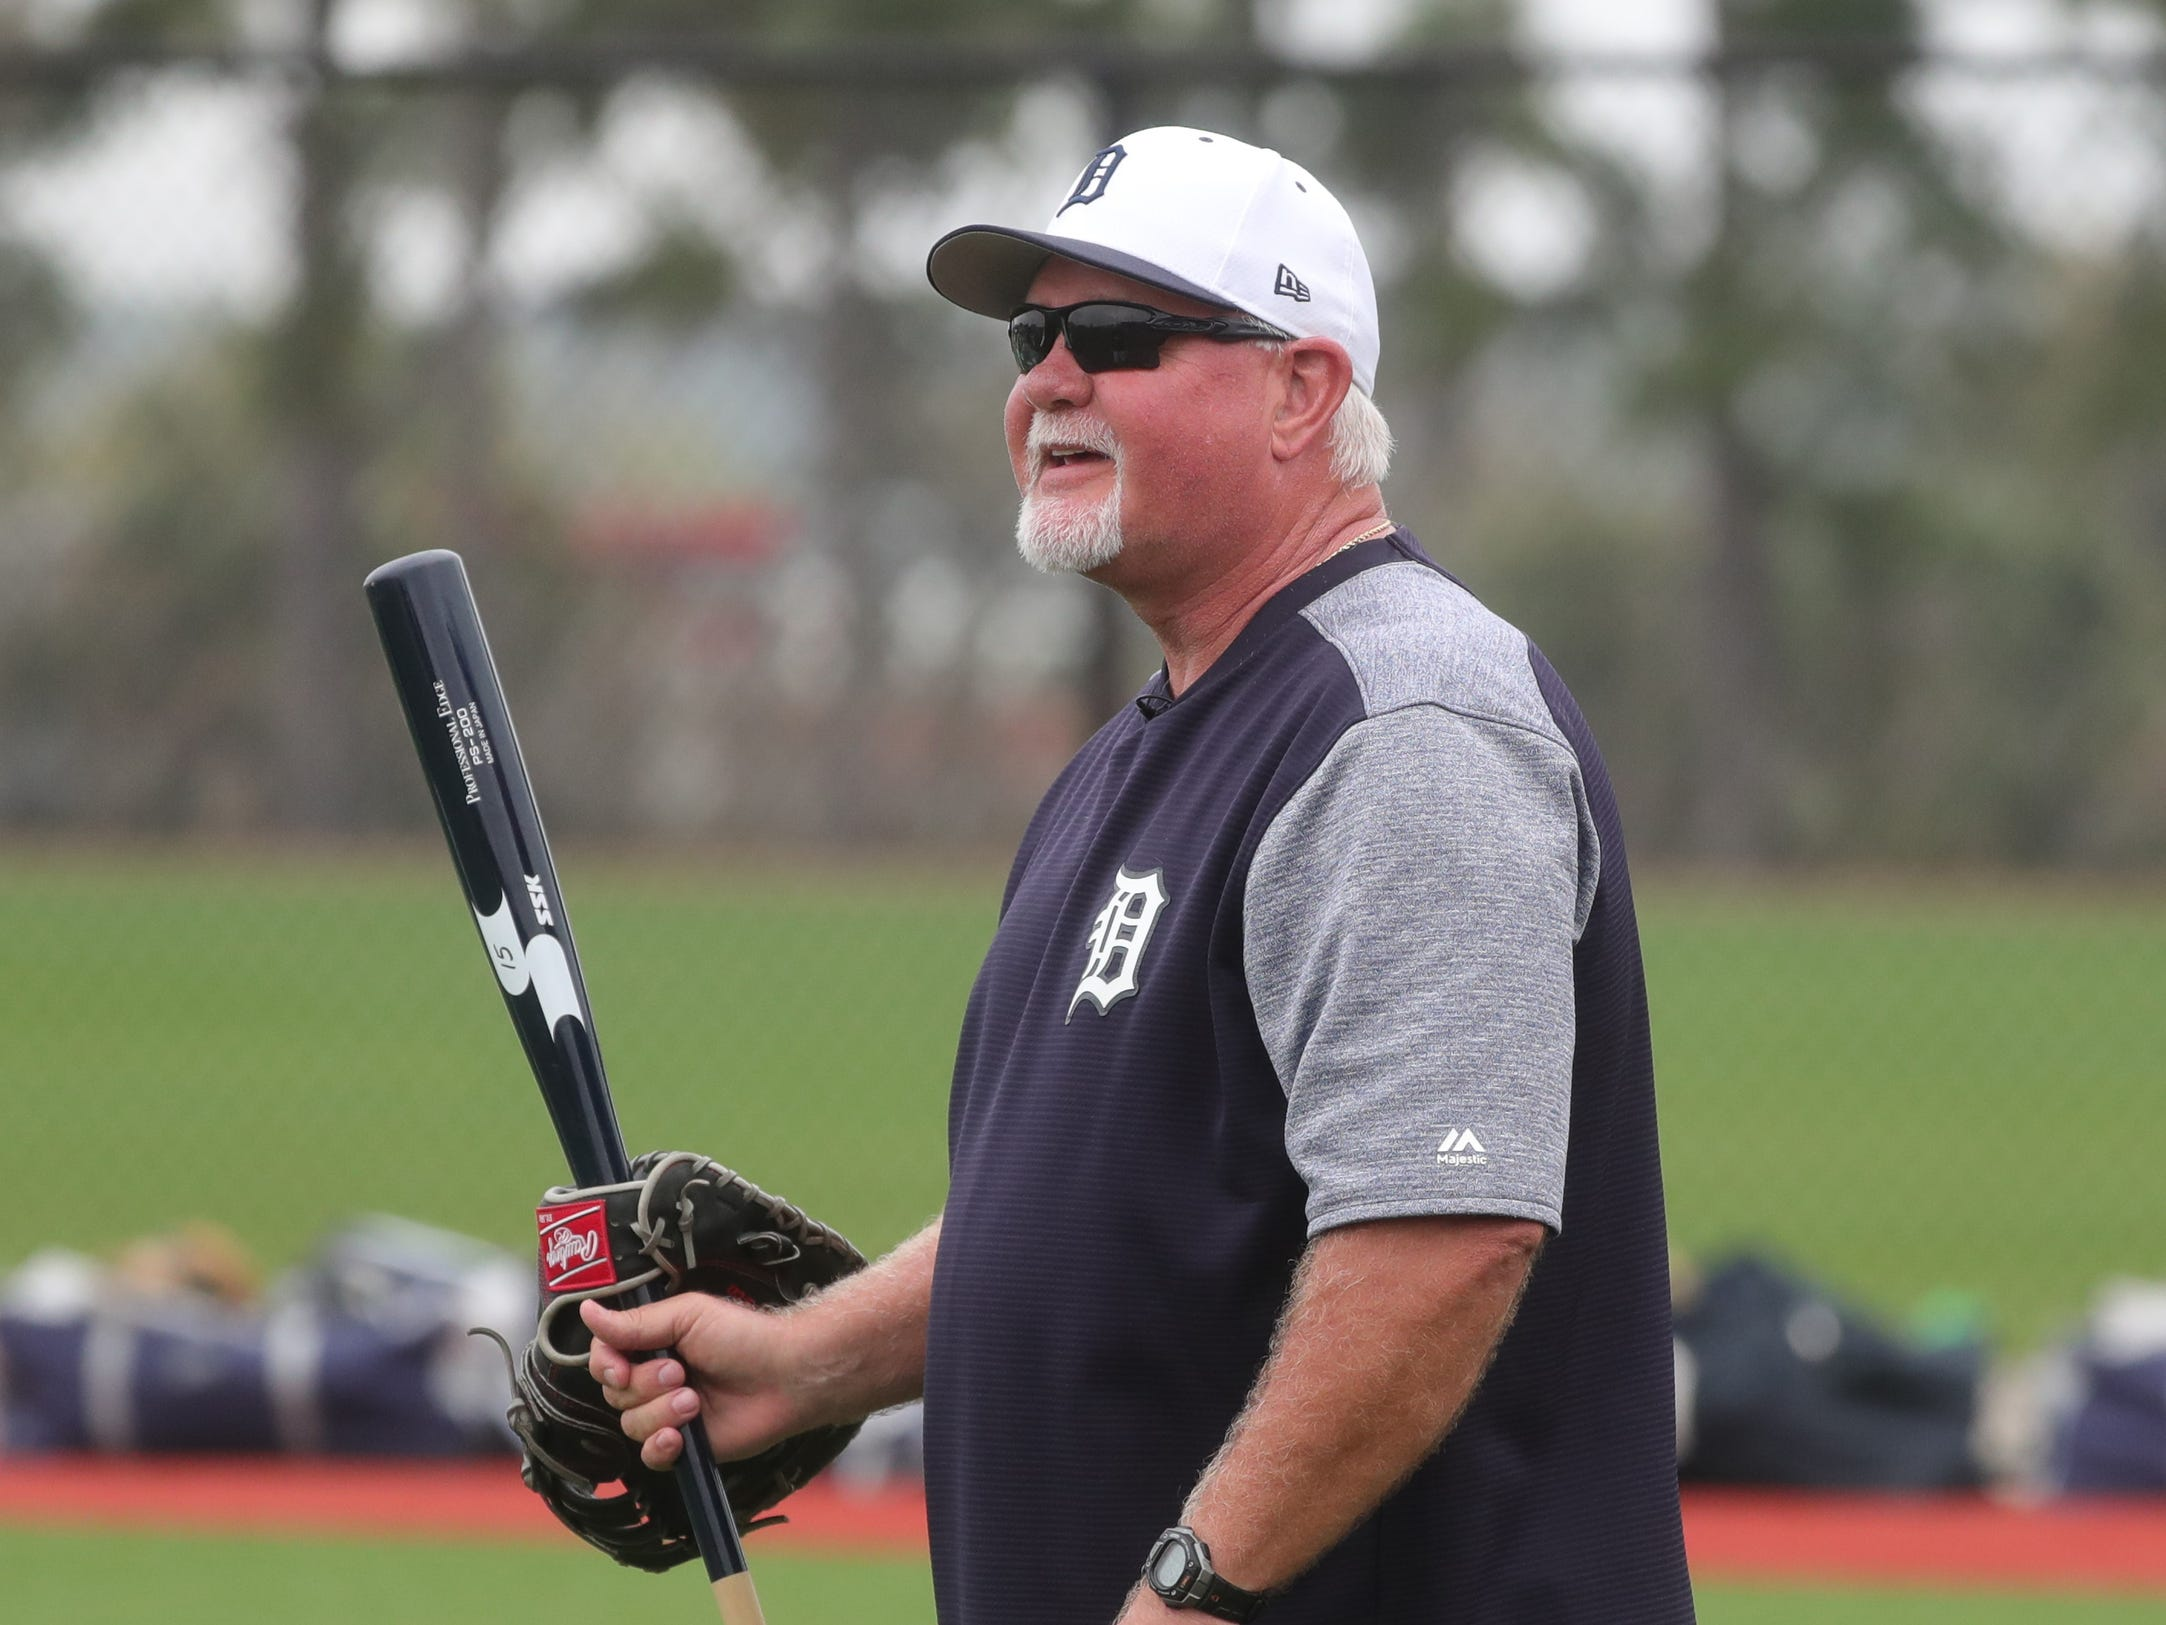 Tigers manager Ron Gardenhire on the field for the first full team spring training practice on Monday, Feb. 18, 2019, at Joker Marchant Stadium in Lakeland, Florida.